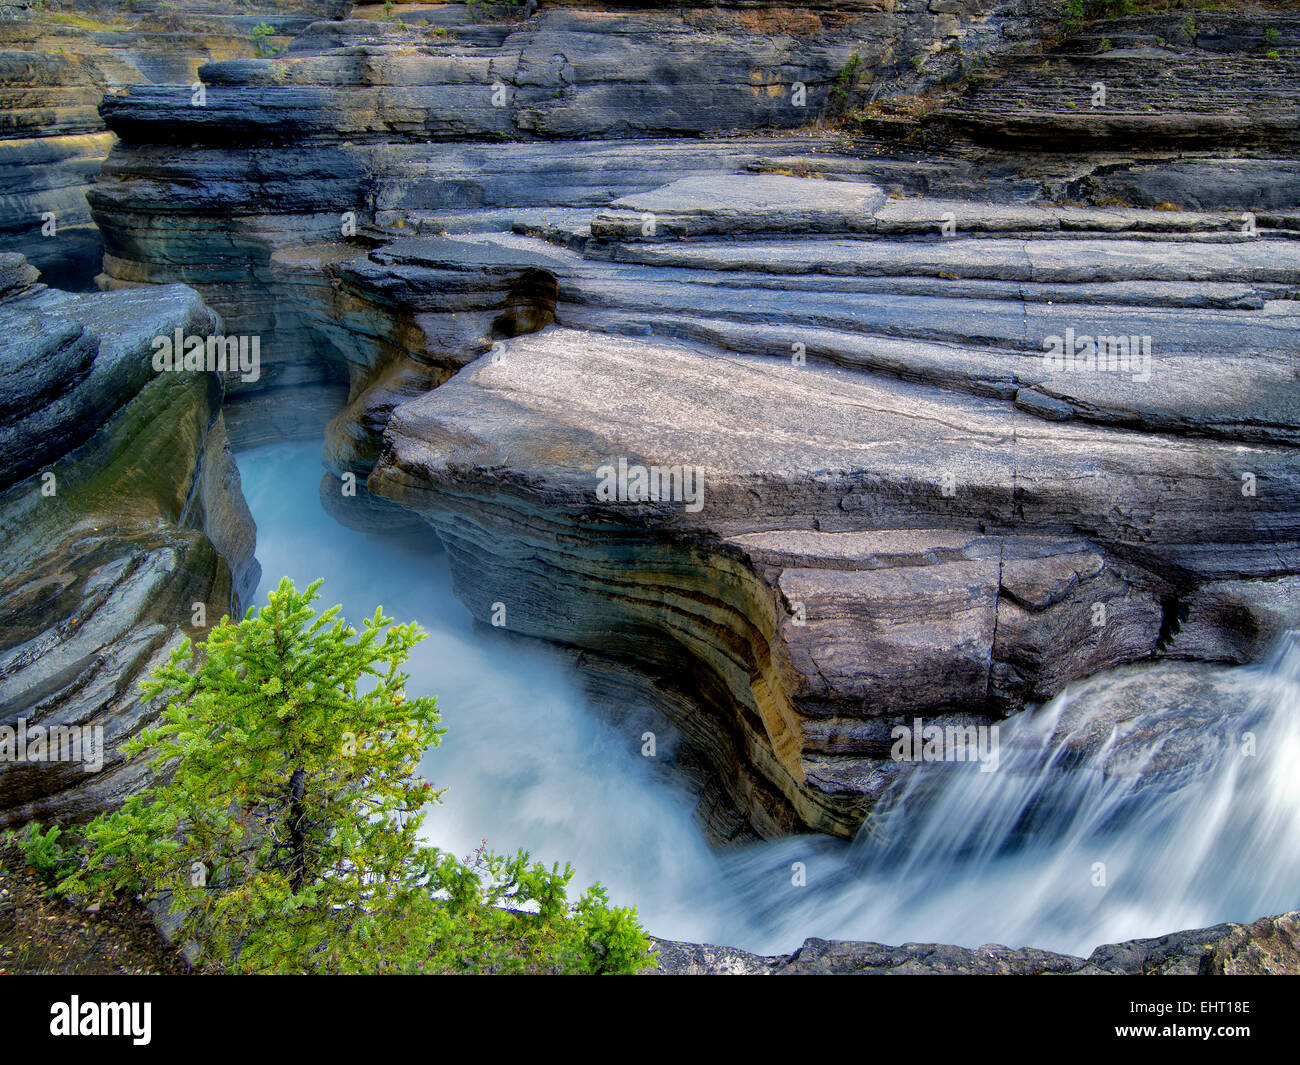 En cours d'Mystiya Canyon. Le parc national Banff, Alberta, Canada Photo Stock